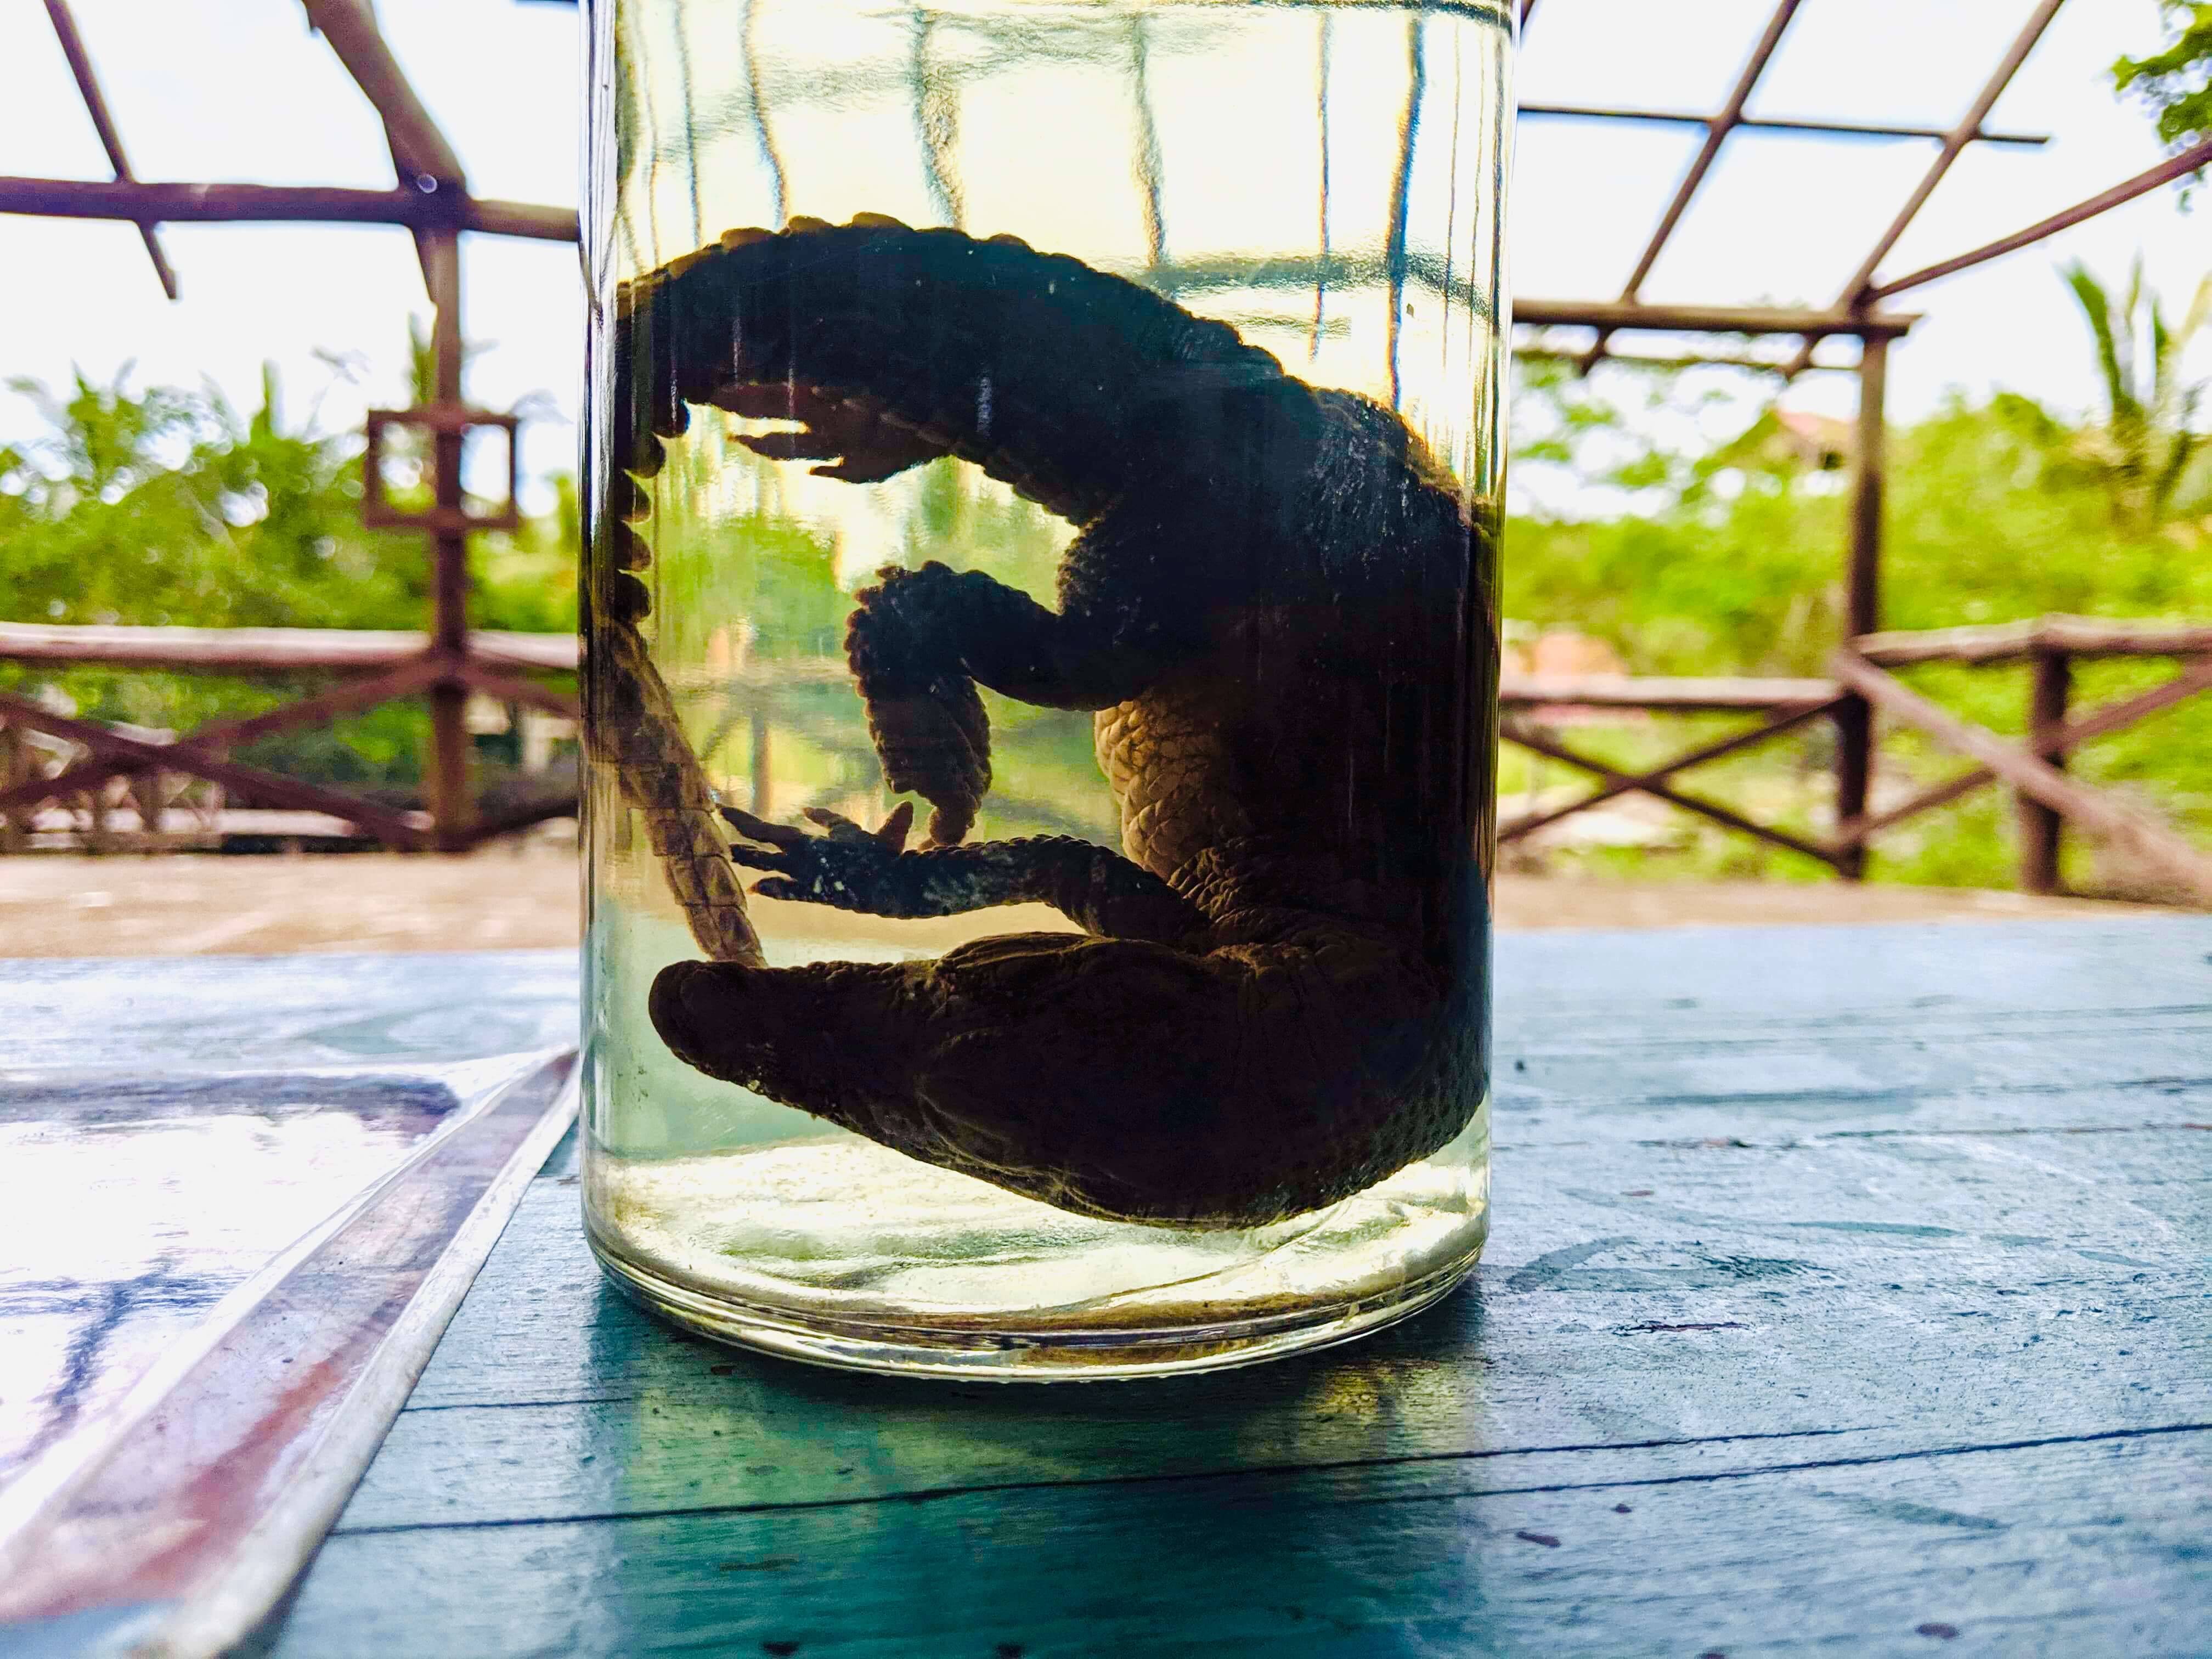 A deceased baby crocodile in a jar on a table